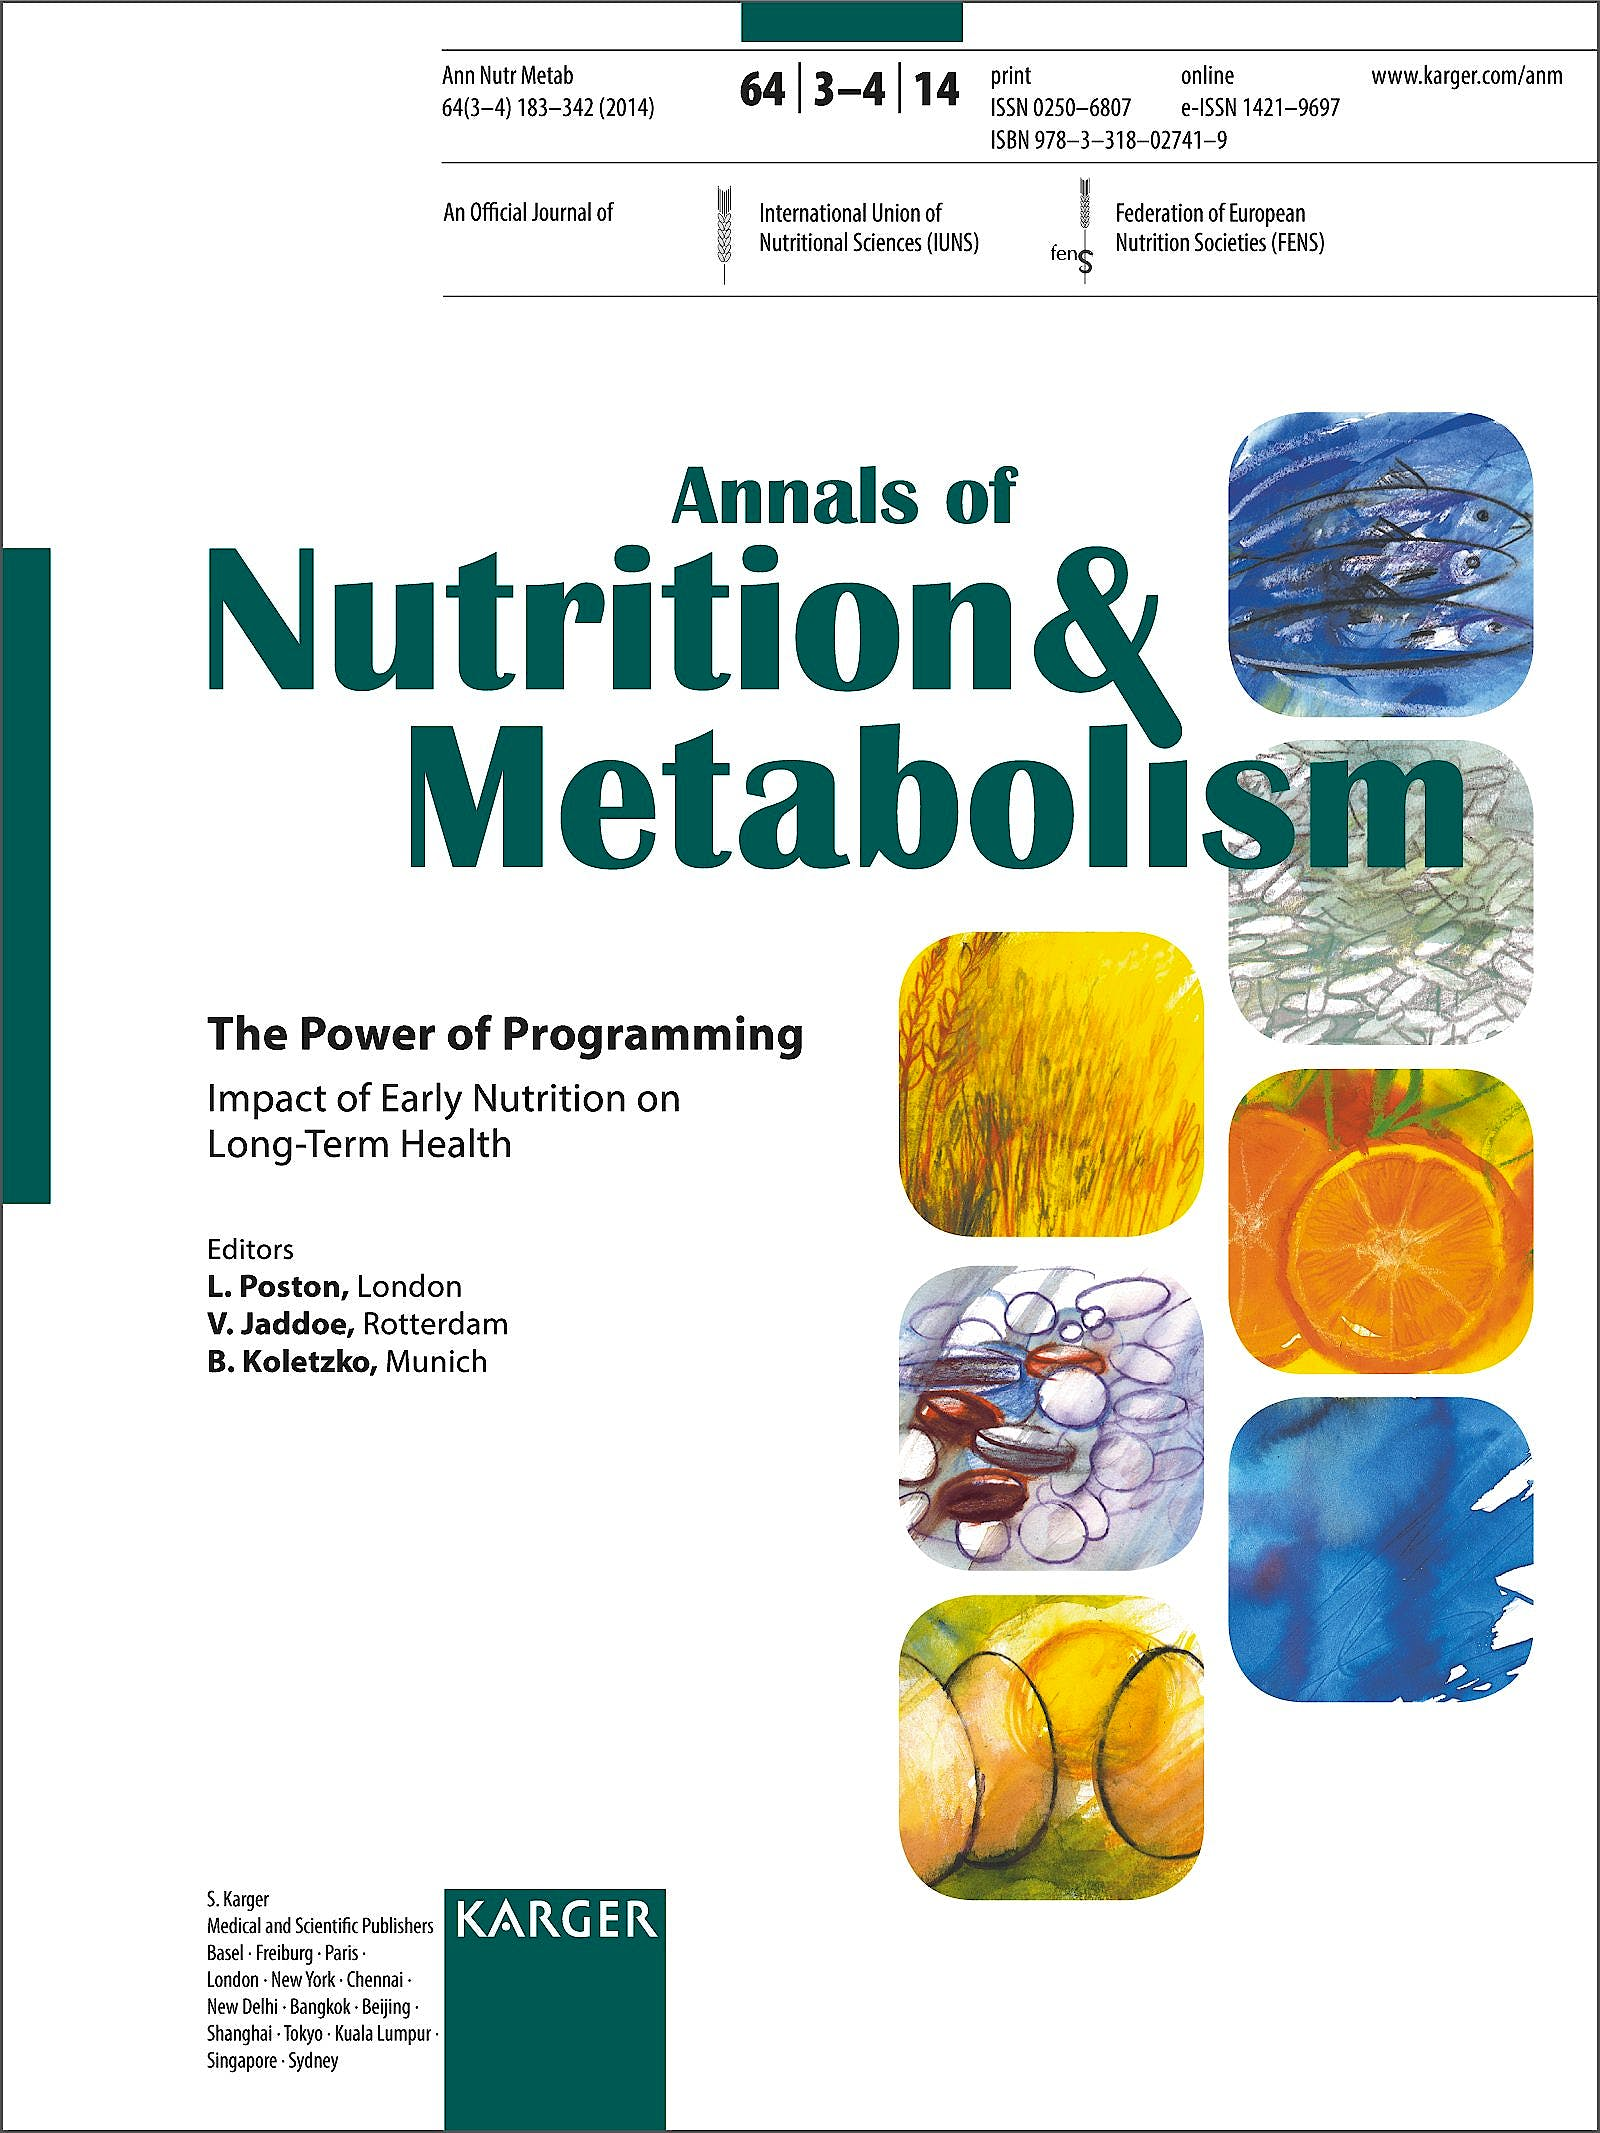 Portada del libro 9783318027419 The Power of Programming 2014: Impact of Early Nutrition on Long Term Health Special Topic Issue